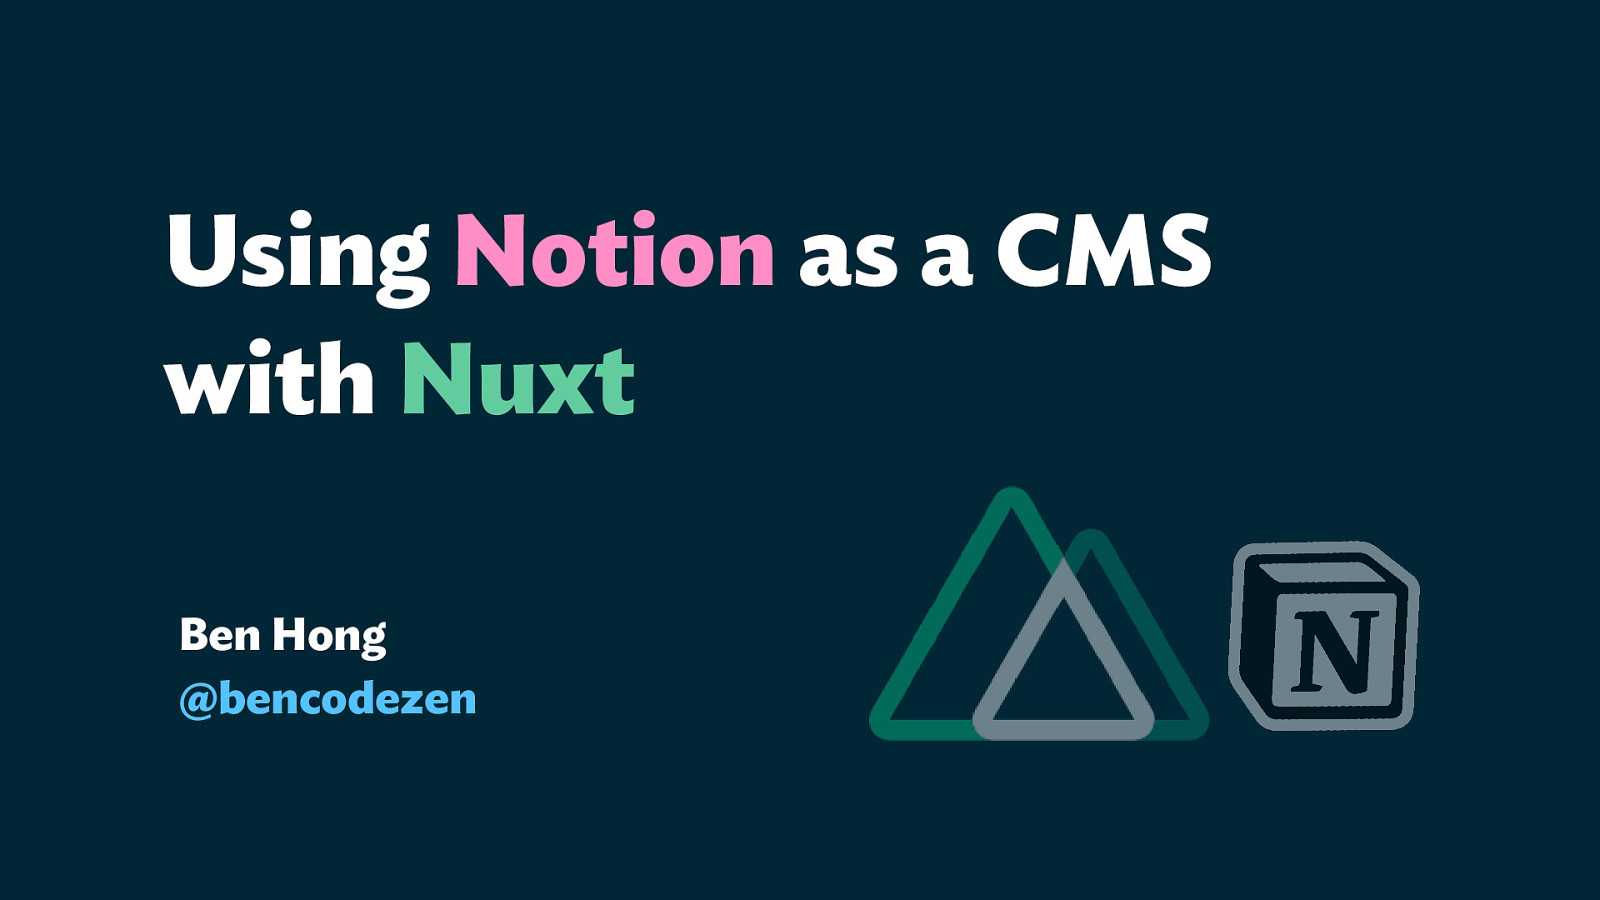 Using Notion as a CMS with Nuxt